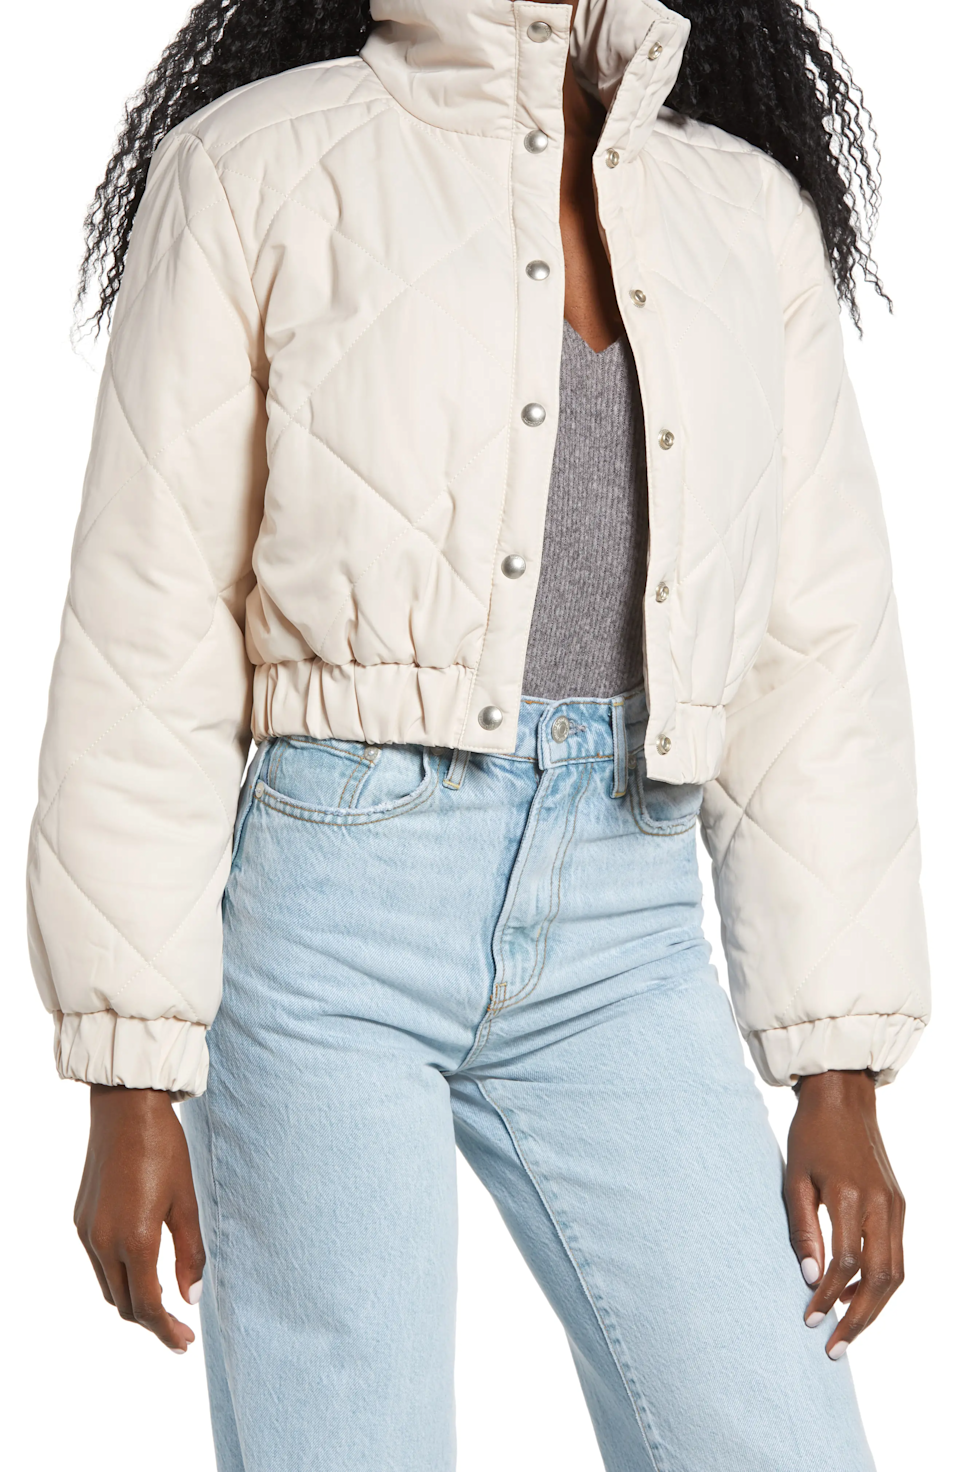 "<br><br><strong>BLANKNYC</strong> Diamond Quilted Crop Puffer Jacket, $, available at <a href=""https://go.skimresources.com/?id=30283X879131&url=https%3A%2F%2Fwww.nordstrom.com%2Fs%2Fblanknyc-diamond-quilted-crop-puffer-jacket%2F5709284"" rel=""nofollow noopener"" target=""_blank"" data-ylk=""slk:Nordstrom"" class=""link rapid-noclick-resp"">Nordstrom</a>"